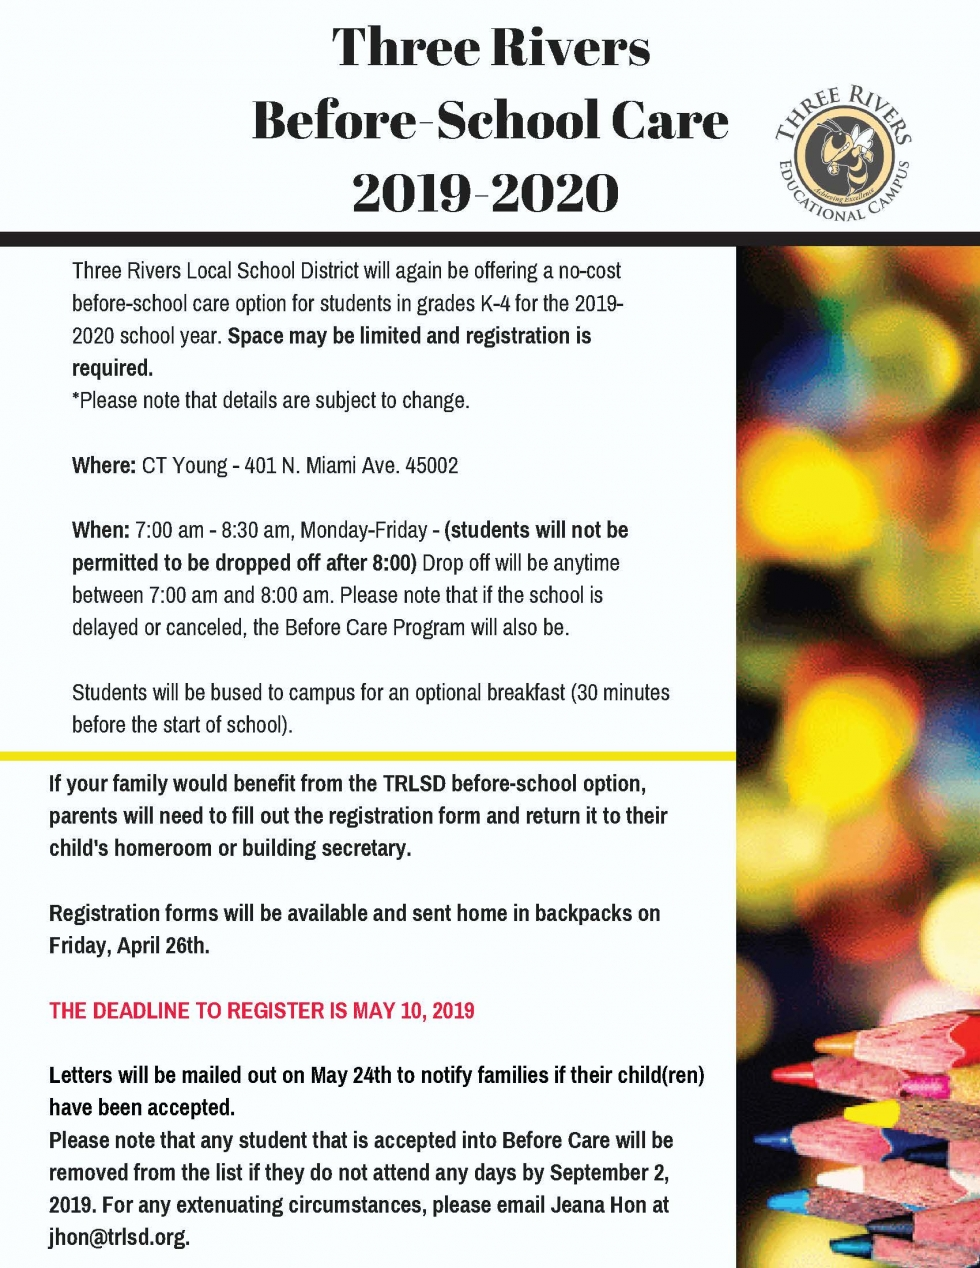 Before Care Program for grades K-4 for 2019-2020.